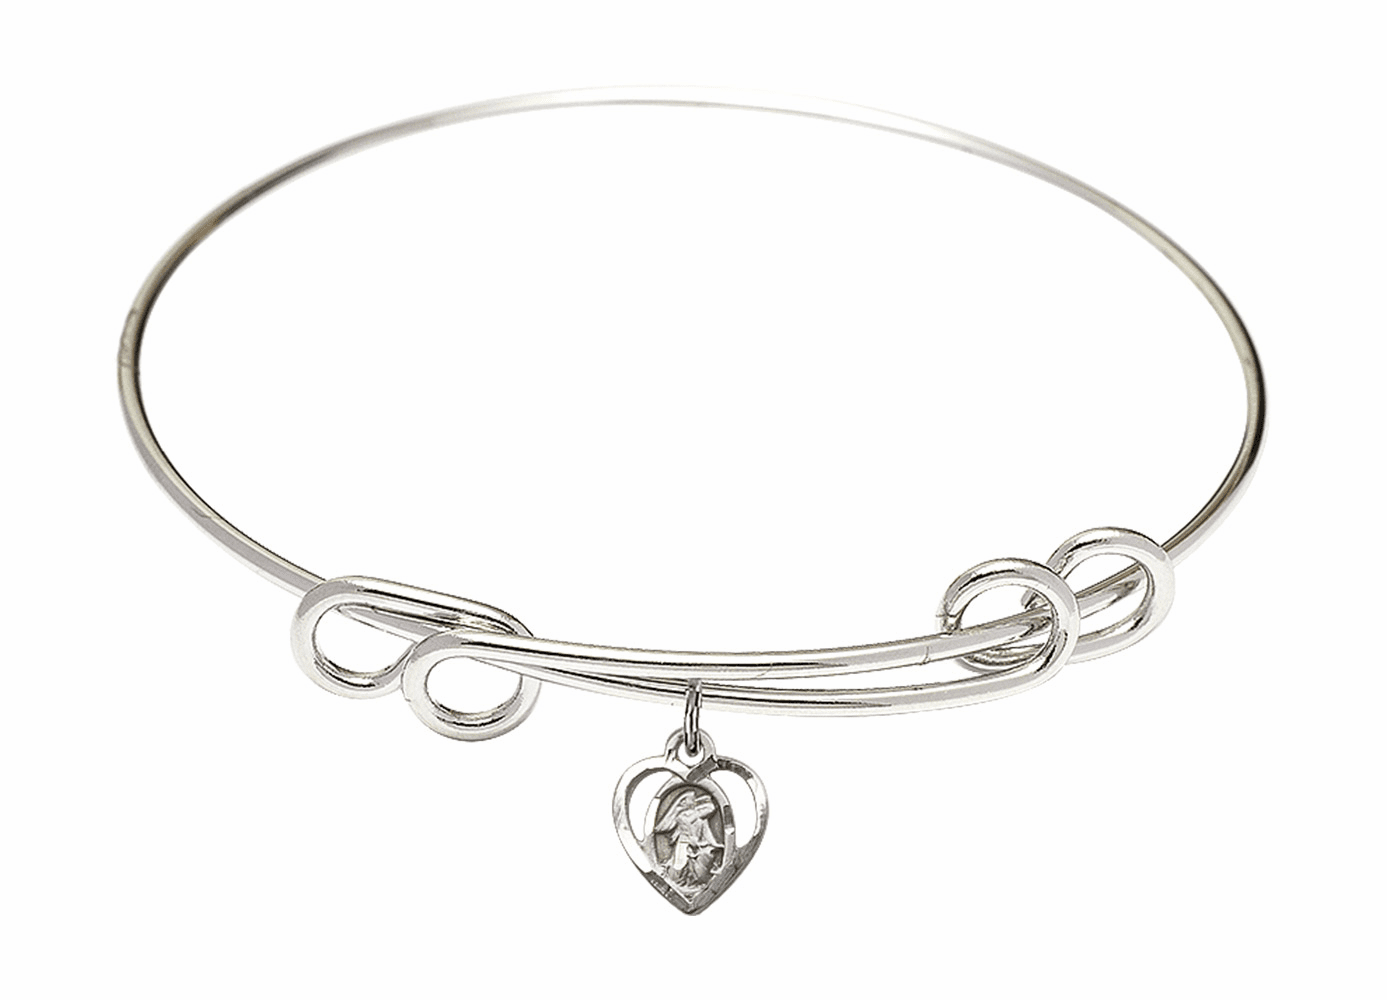 Round Double Loop Bangle Bracelet w/Guardian Angel Heart Sterling Silver Charm by Bliss Mfg